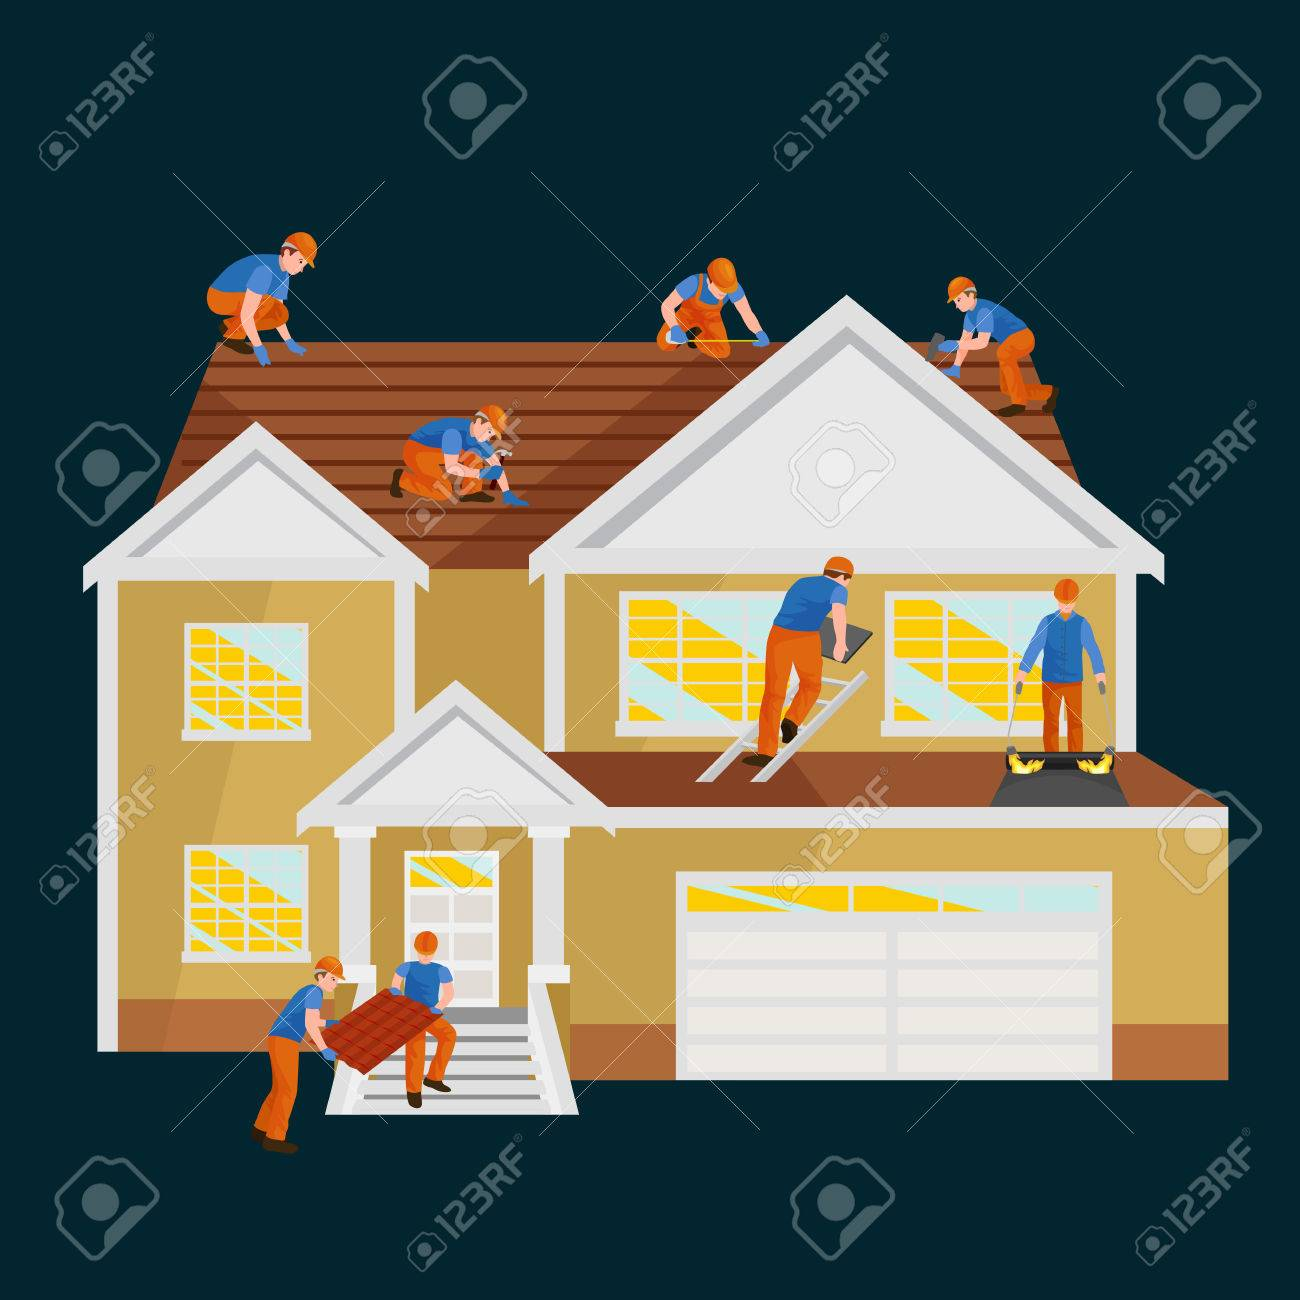 Roof Construction Worker Repair Home, Build Structure Fixing Rooftop Tile  House With Labor Equipment,